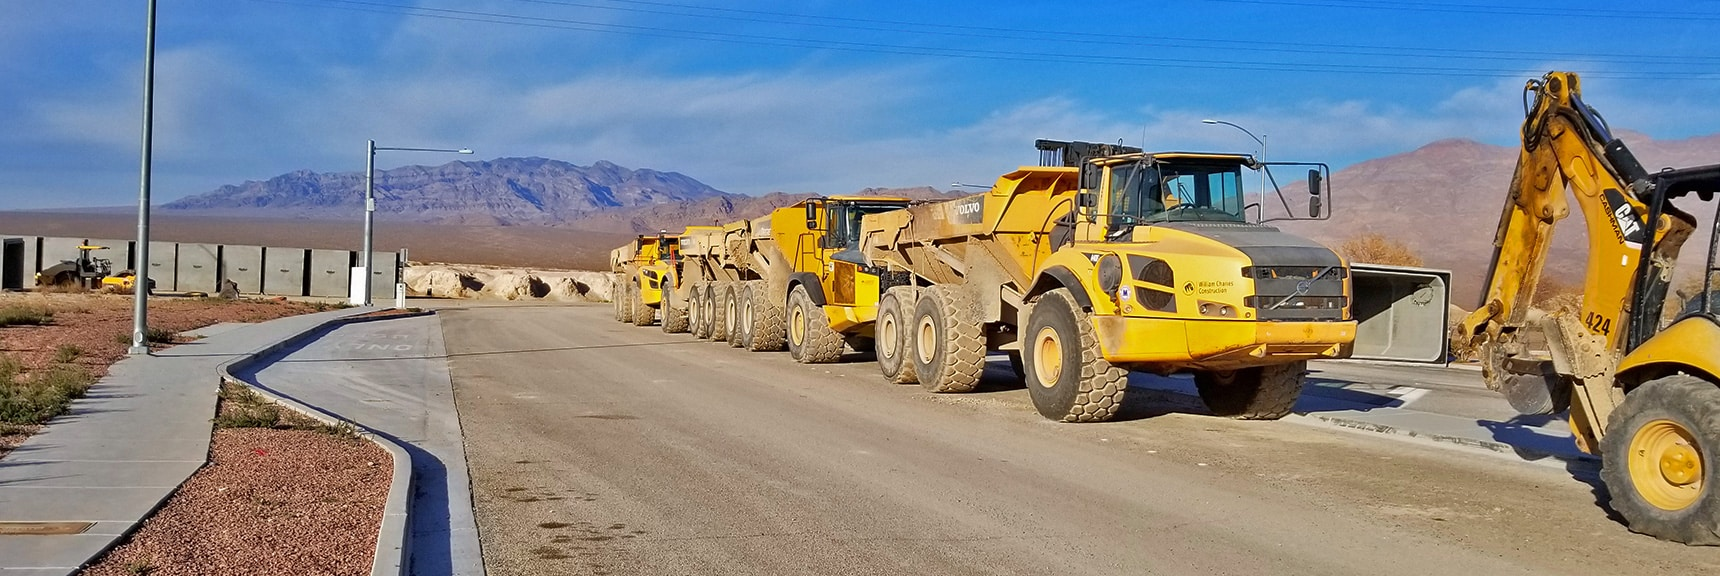 Construction Equipment at the North End of Durango Road at Tule Springs Fossil Beds | Snapshot of Las Vegas Northern Growth Edge on January 3, 2021